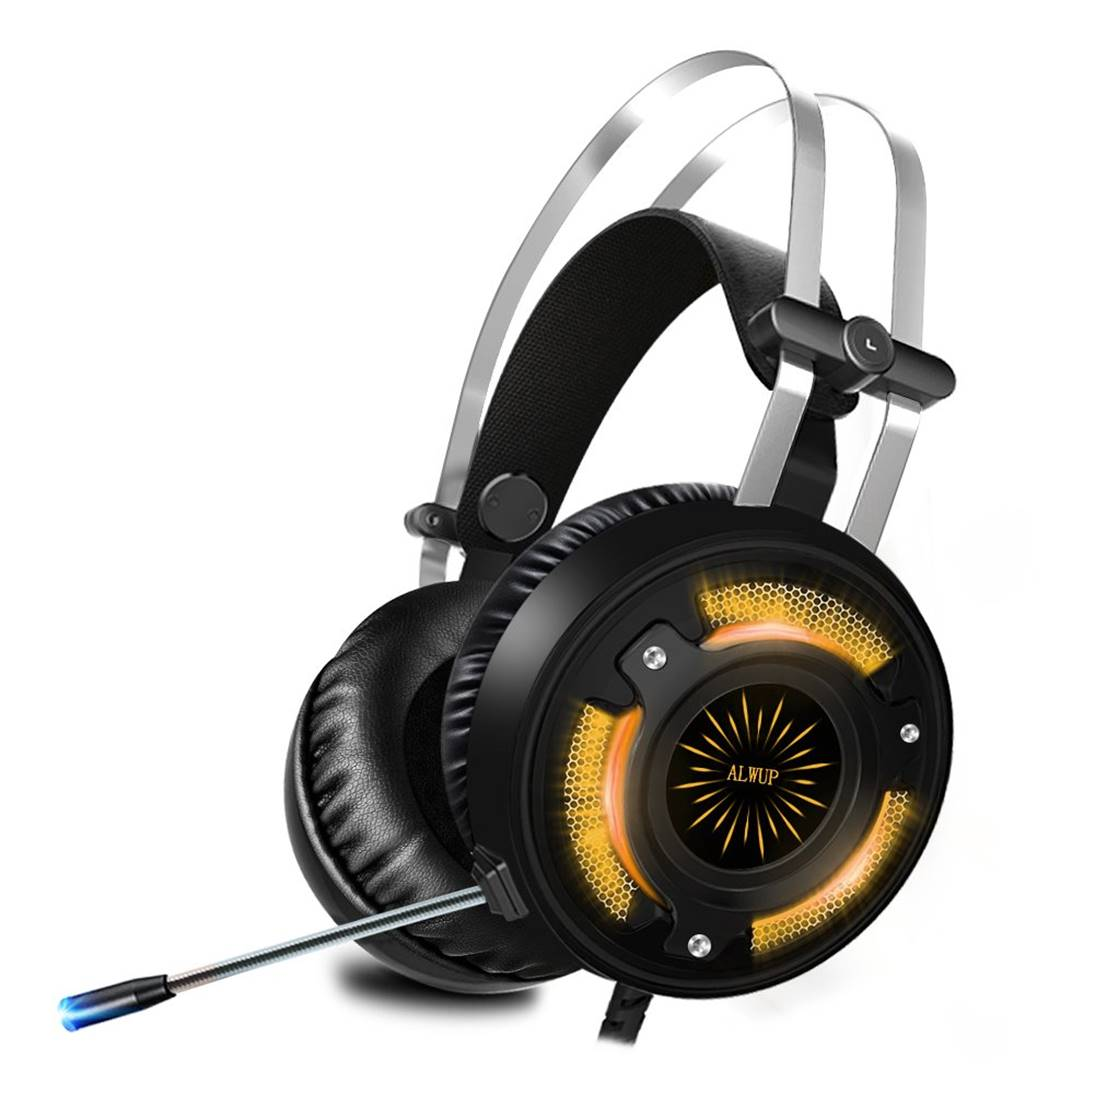 ALWUP Gaming Headphones for PS4